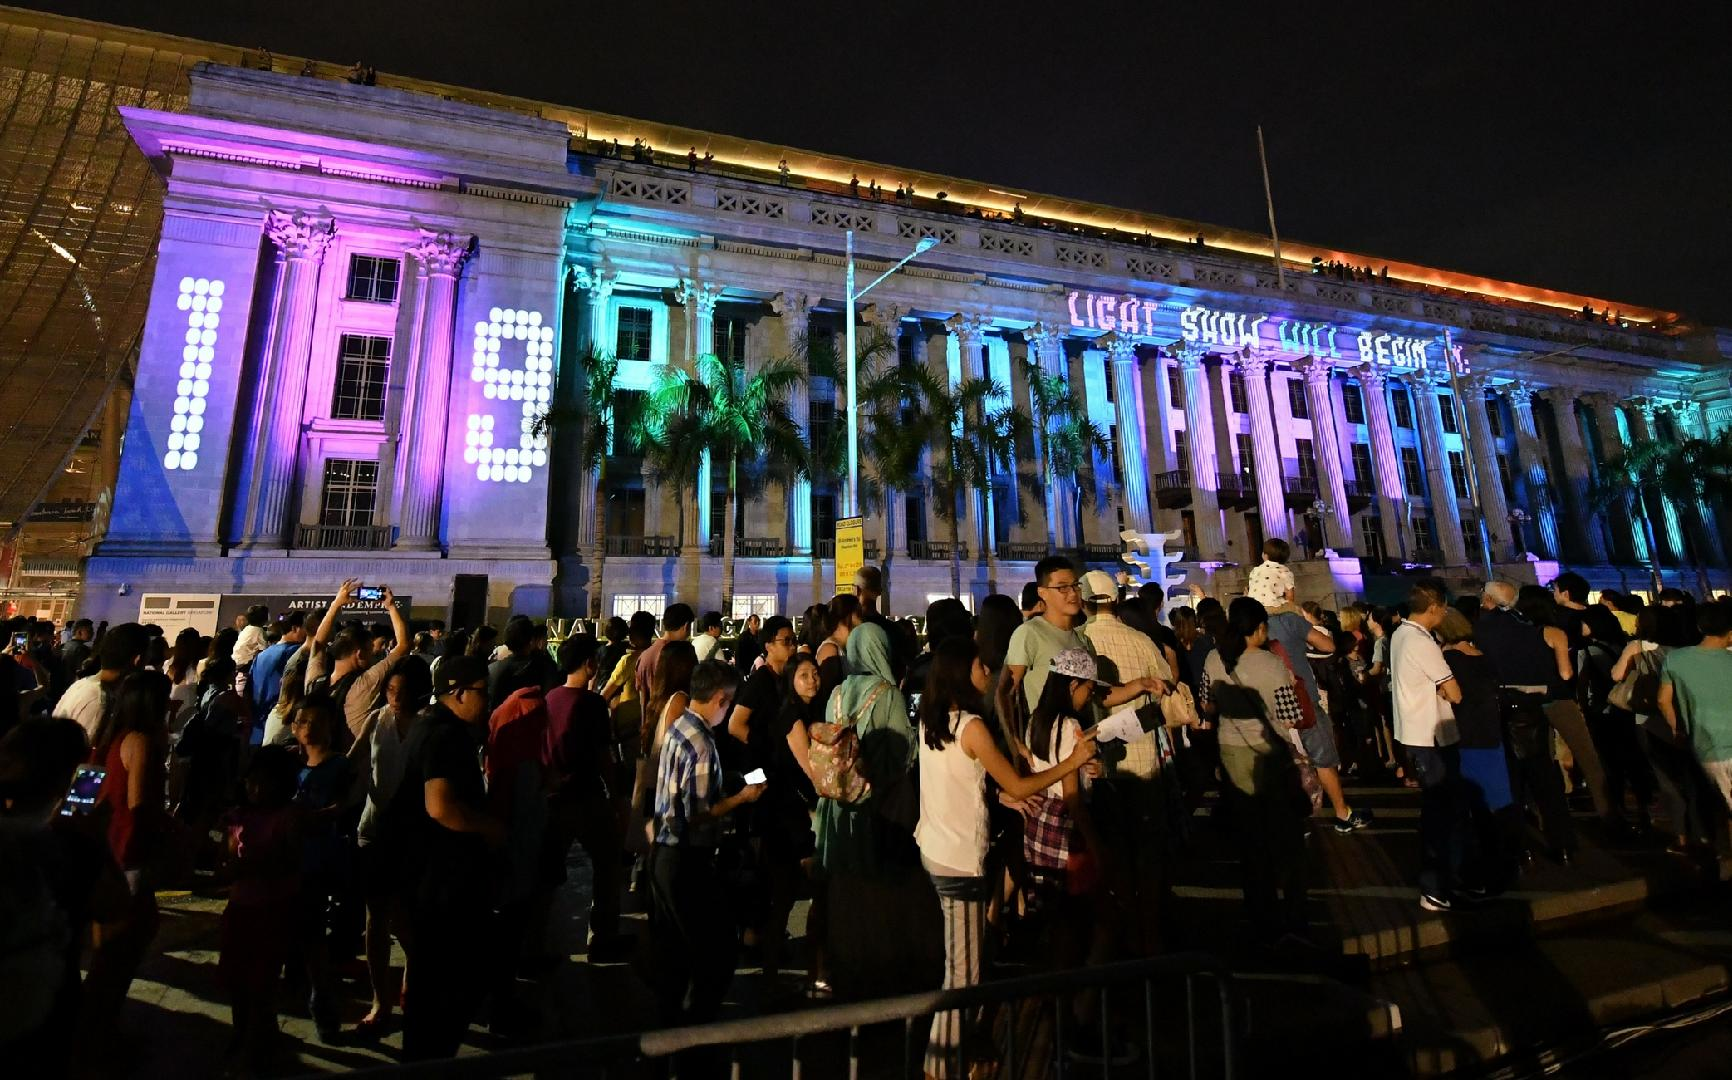 This year's theme, Colour Sensations, features a spectacular multimedia projection show